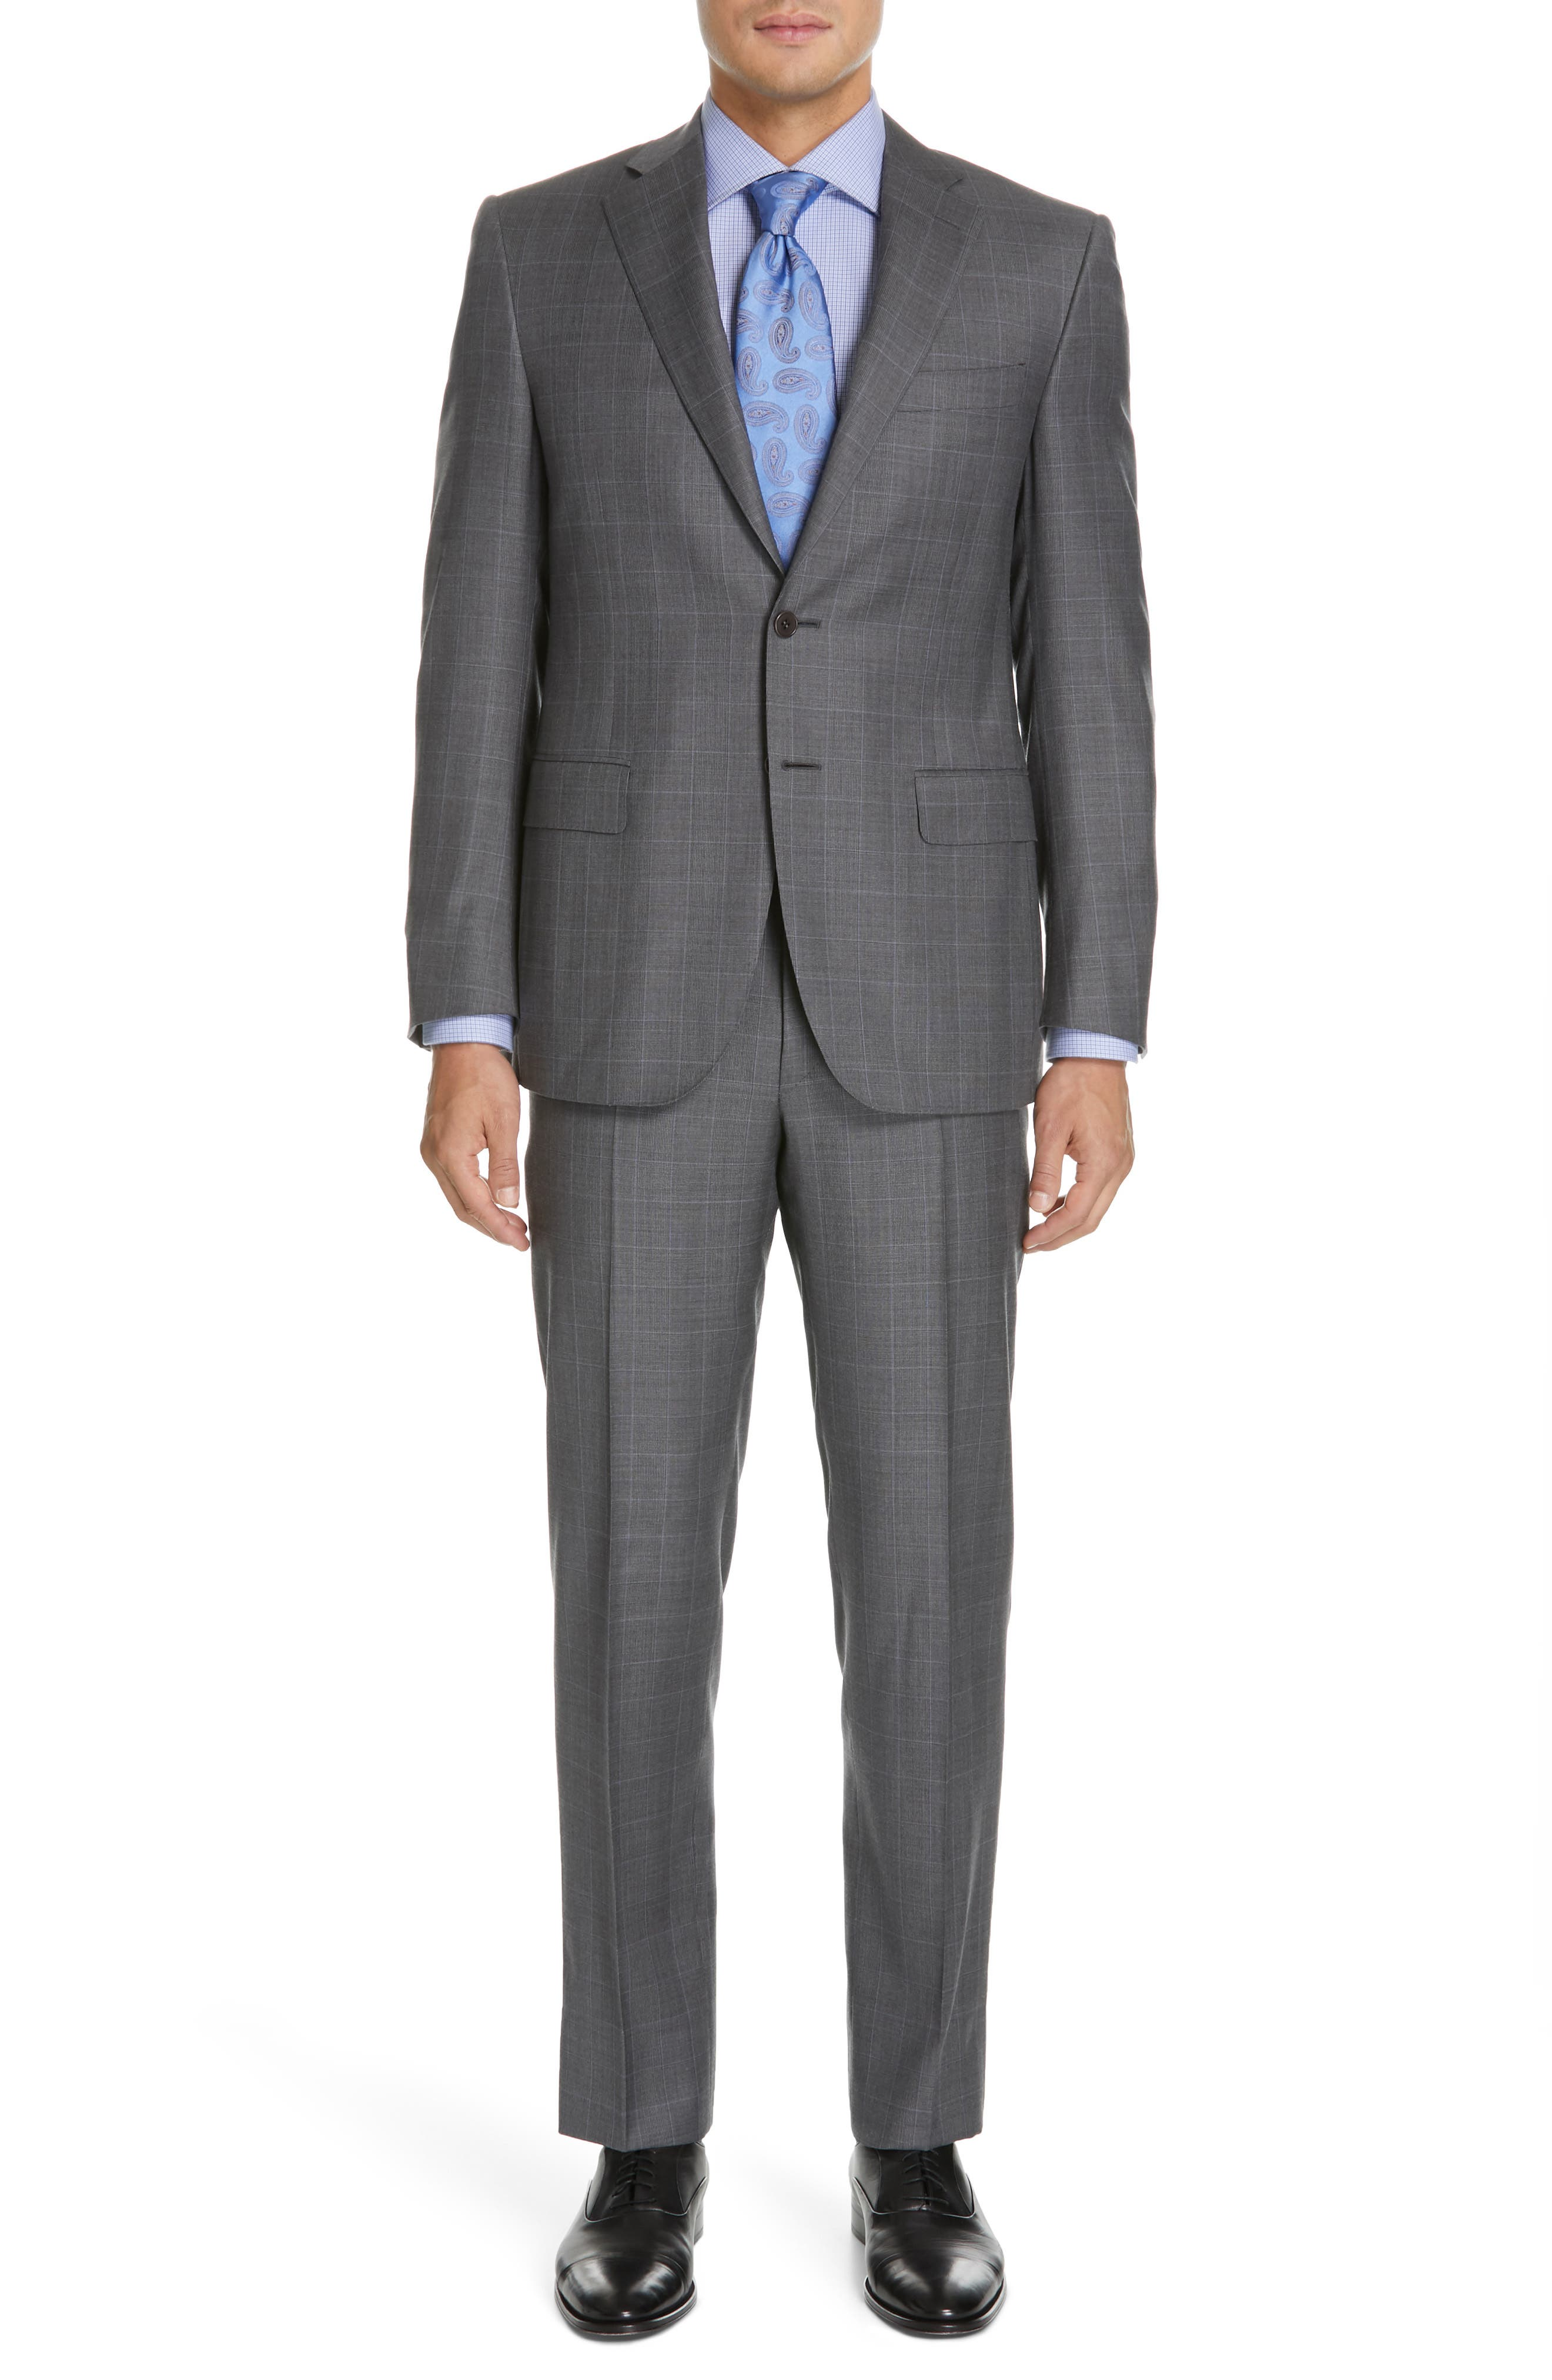 CANALI, Sienna Classic Fit Plaid Wool Suit, Main thumbnail 1, color, GREY